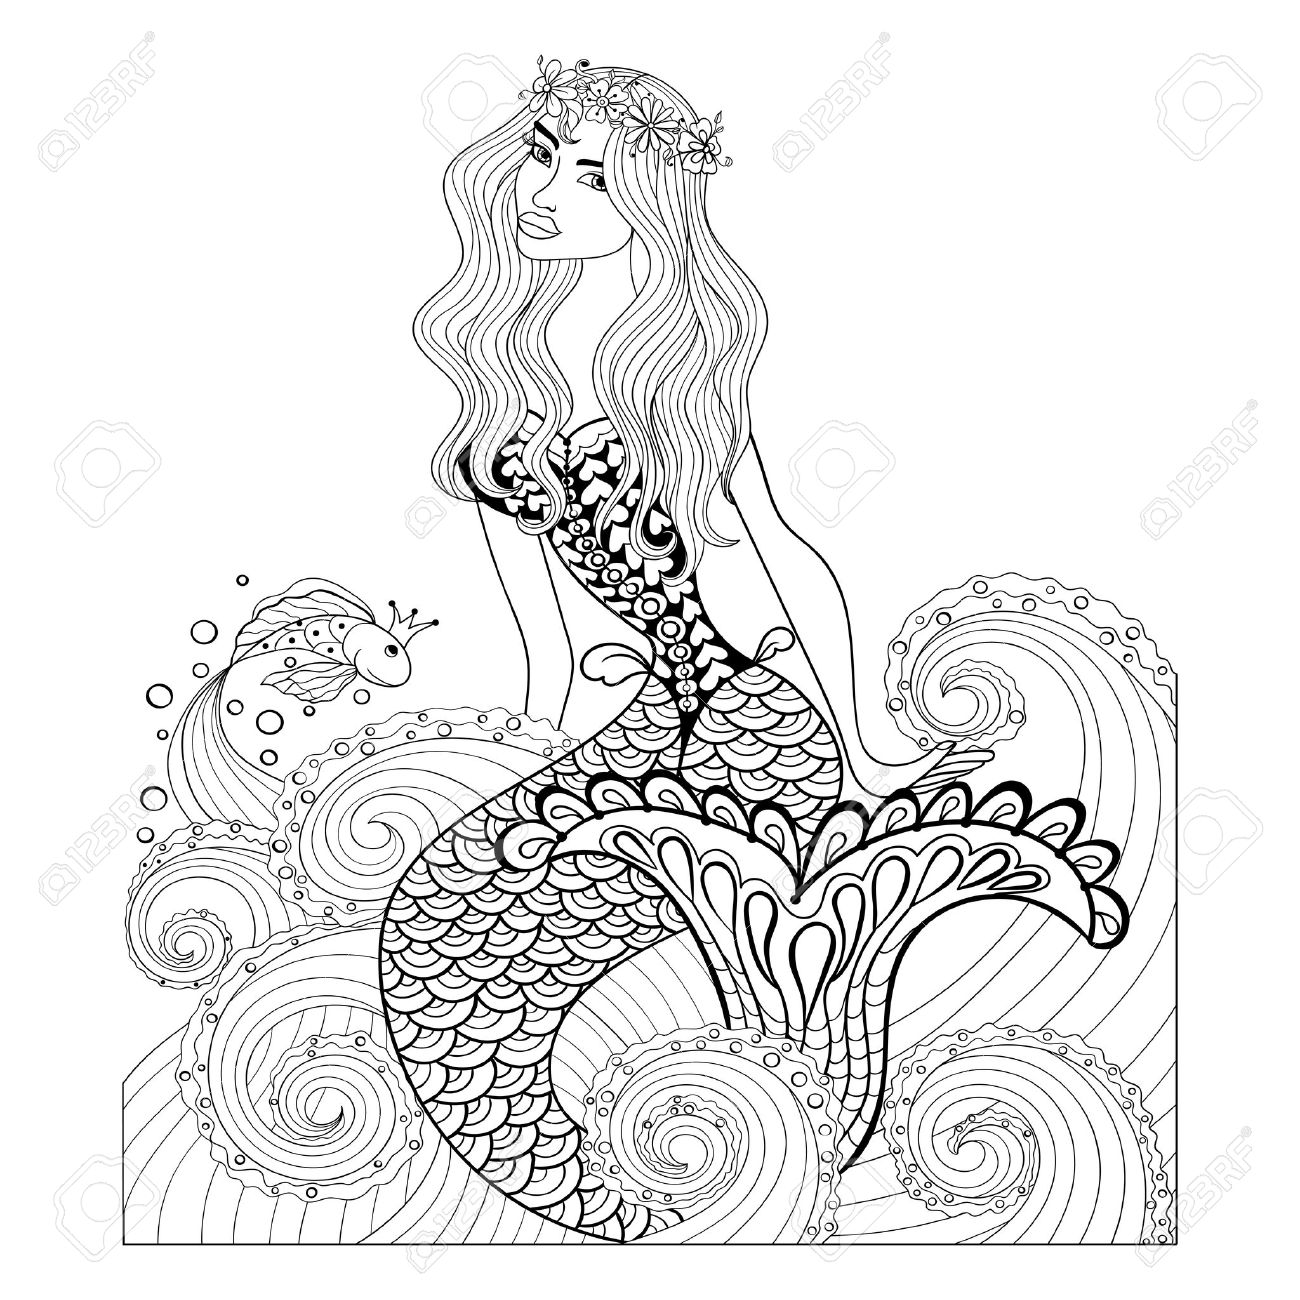 1300x1300 Fantastic Mermaid In Sea Waves With A Goldfish And Wreath On